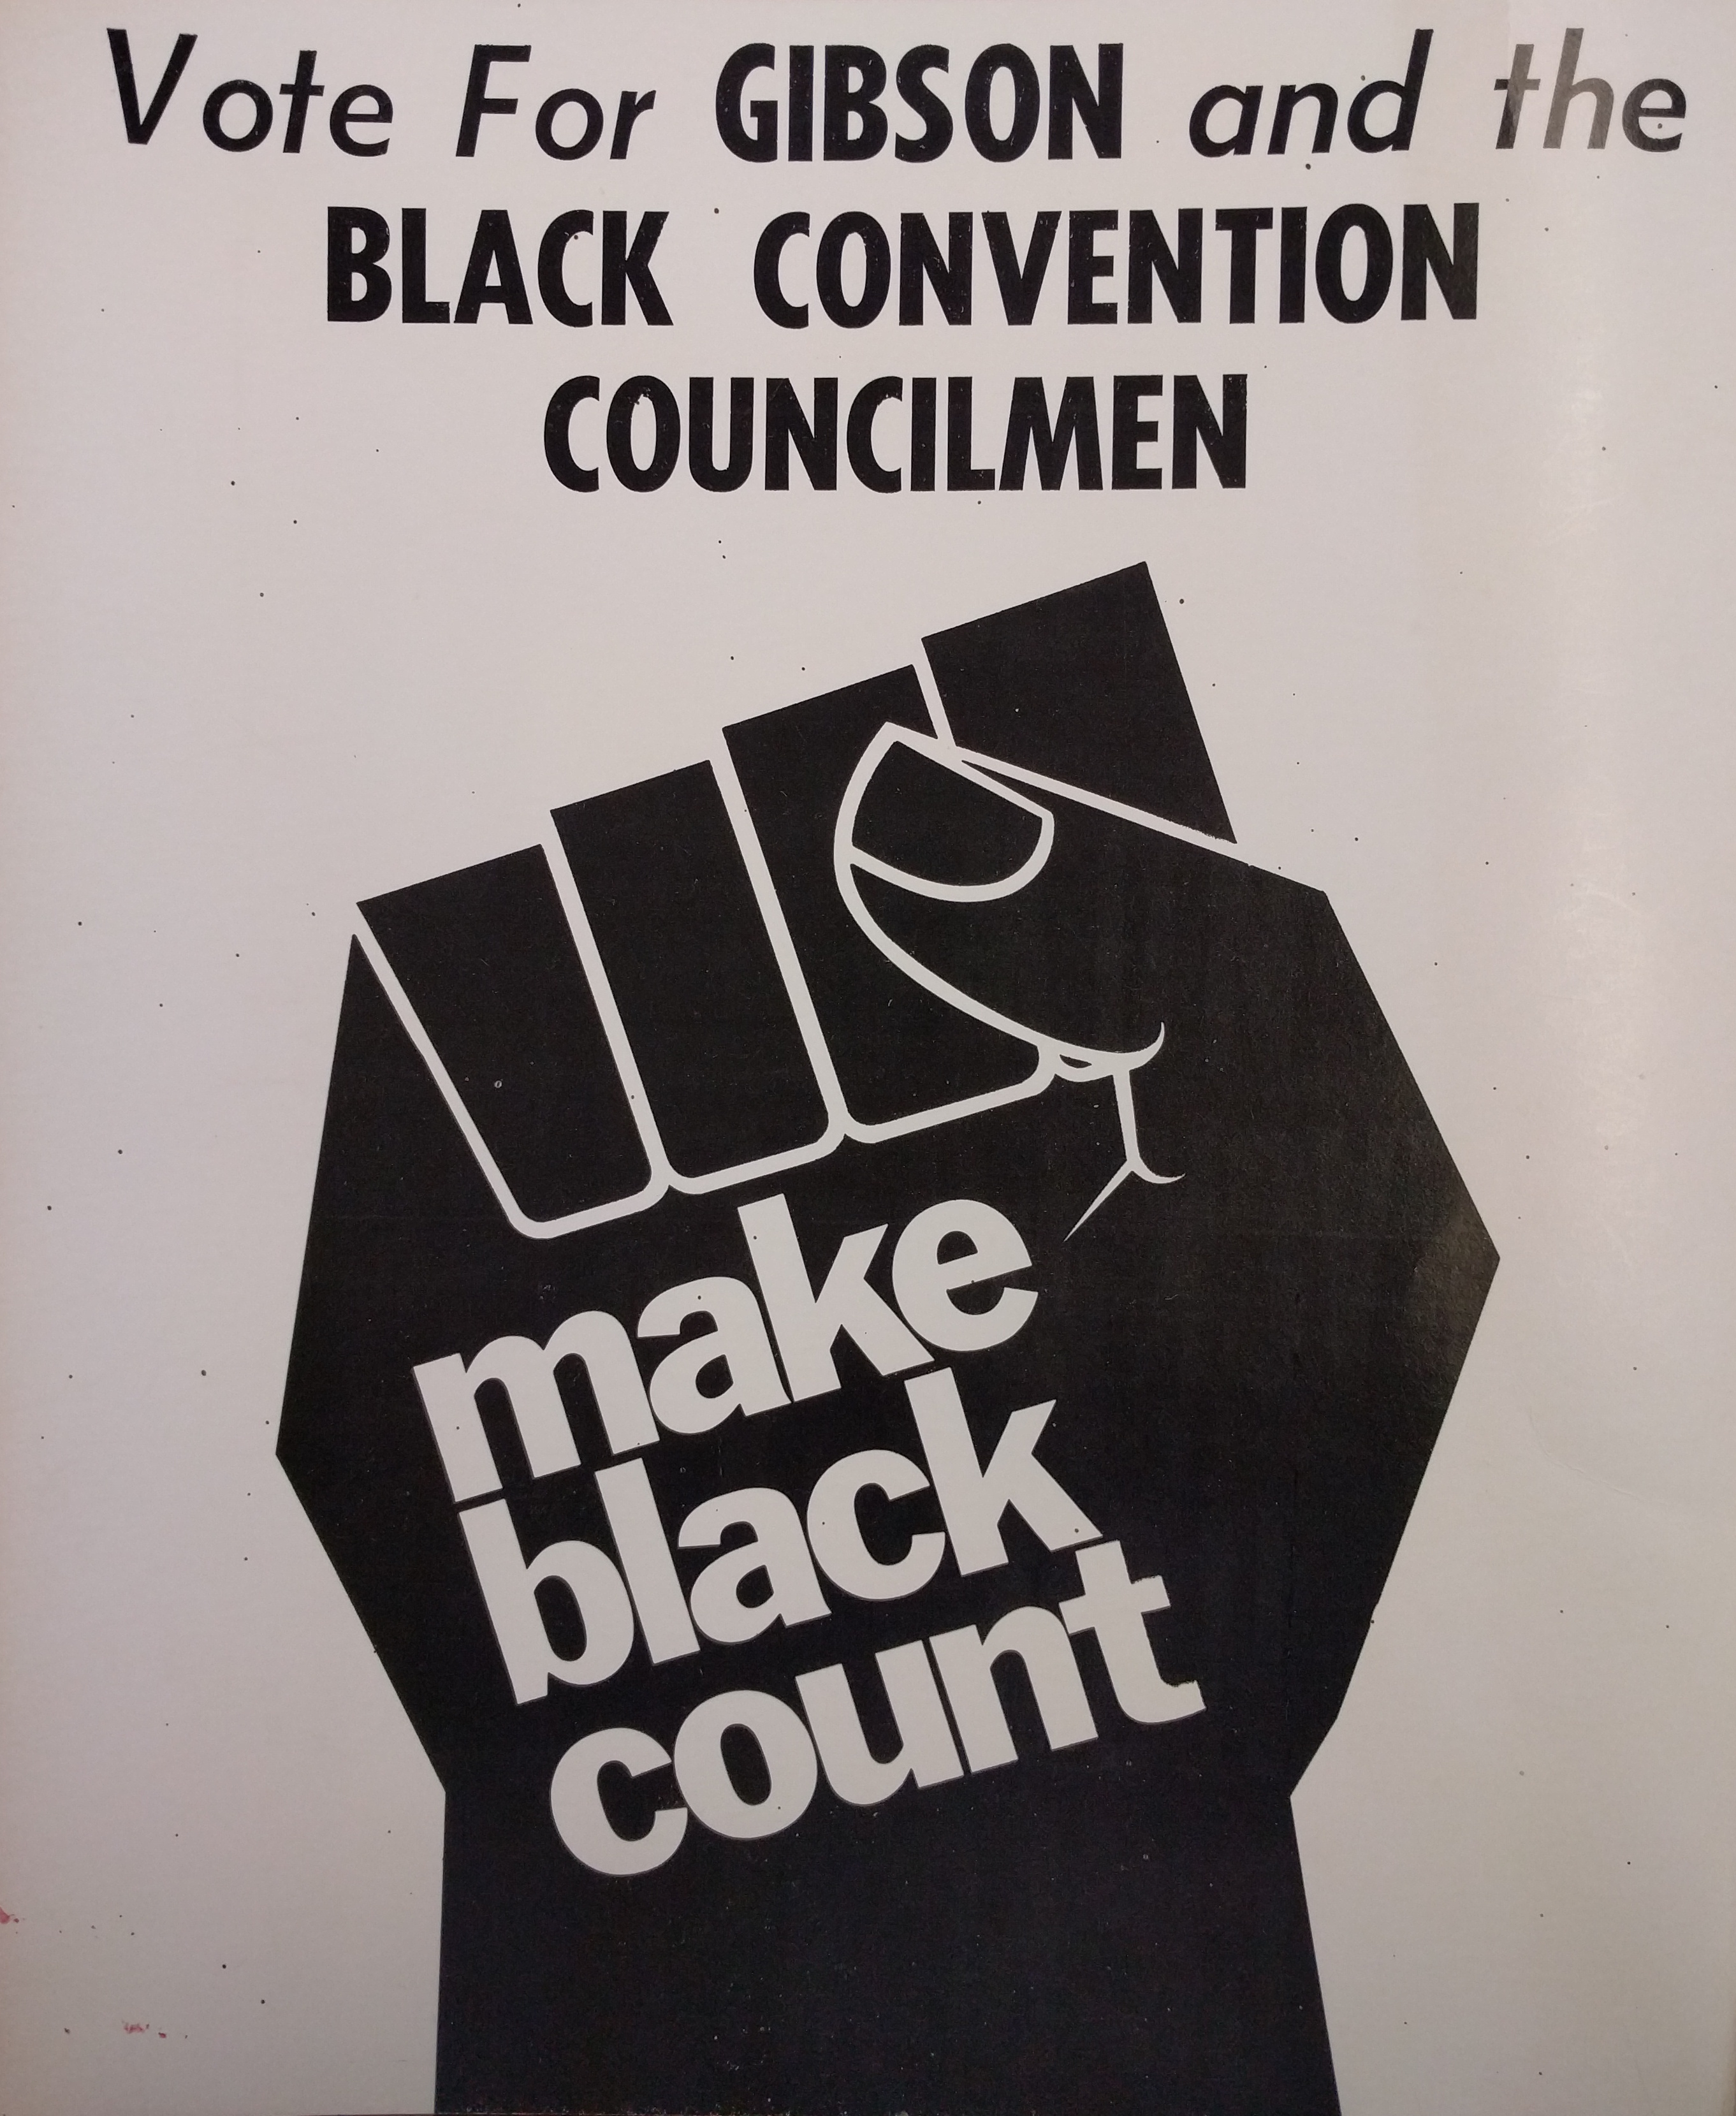 Vote for Gibson and the Black Convention Councilmen